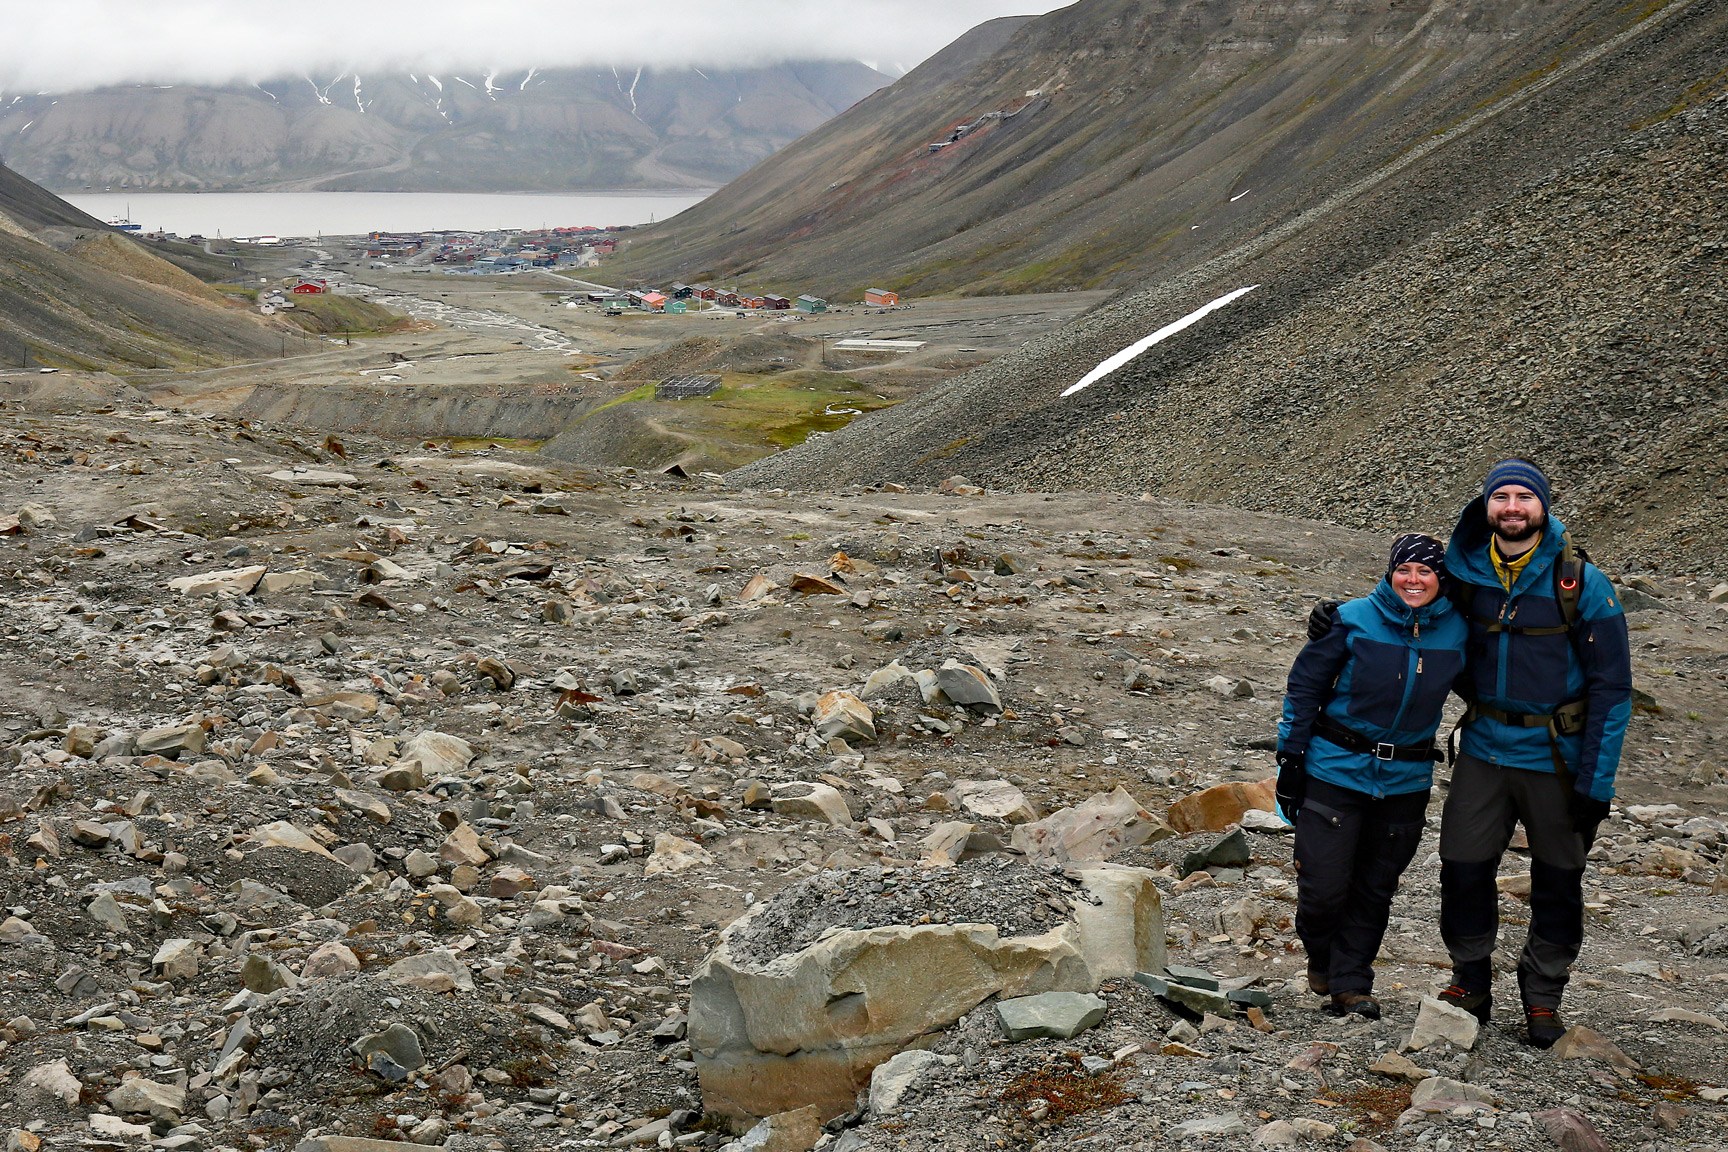 Searching the glacial moraine with Ida and Ryan for Paleocene plant fossils.